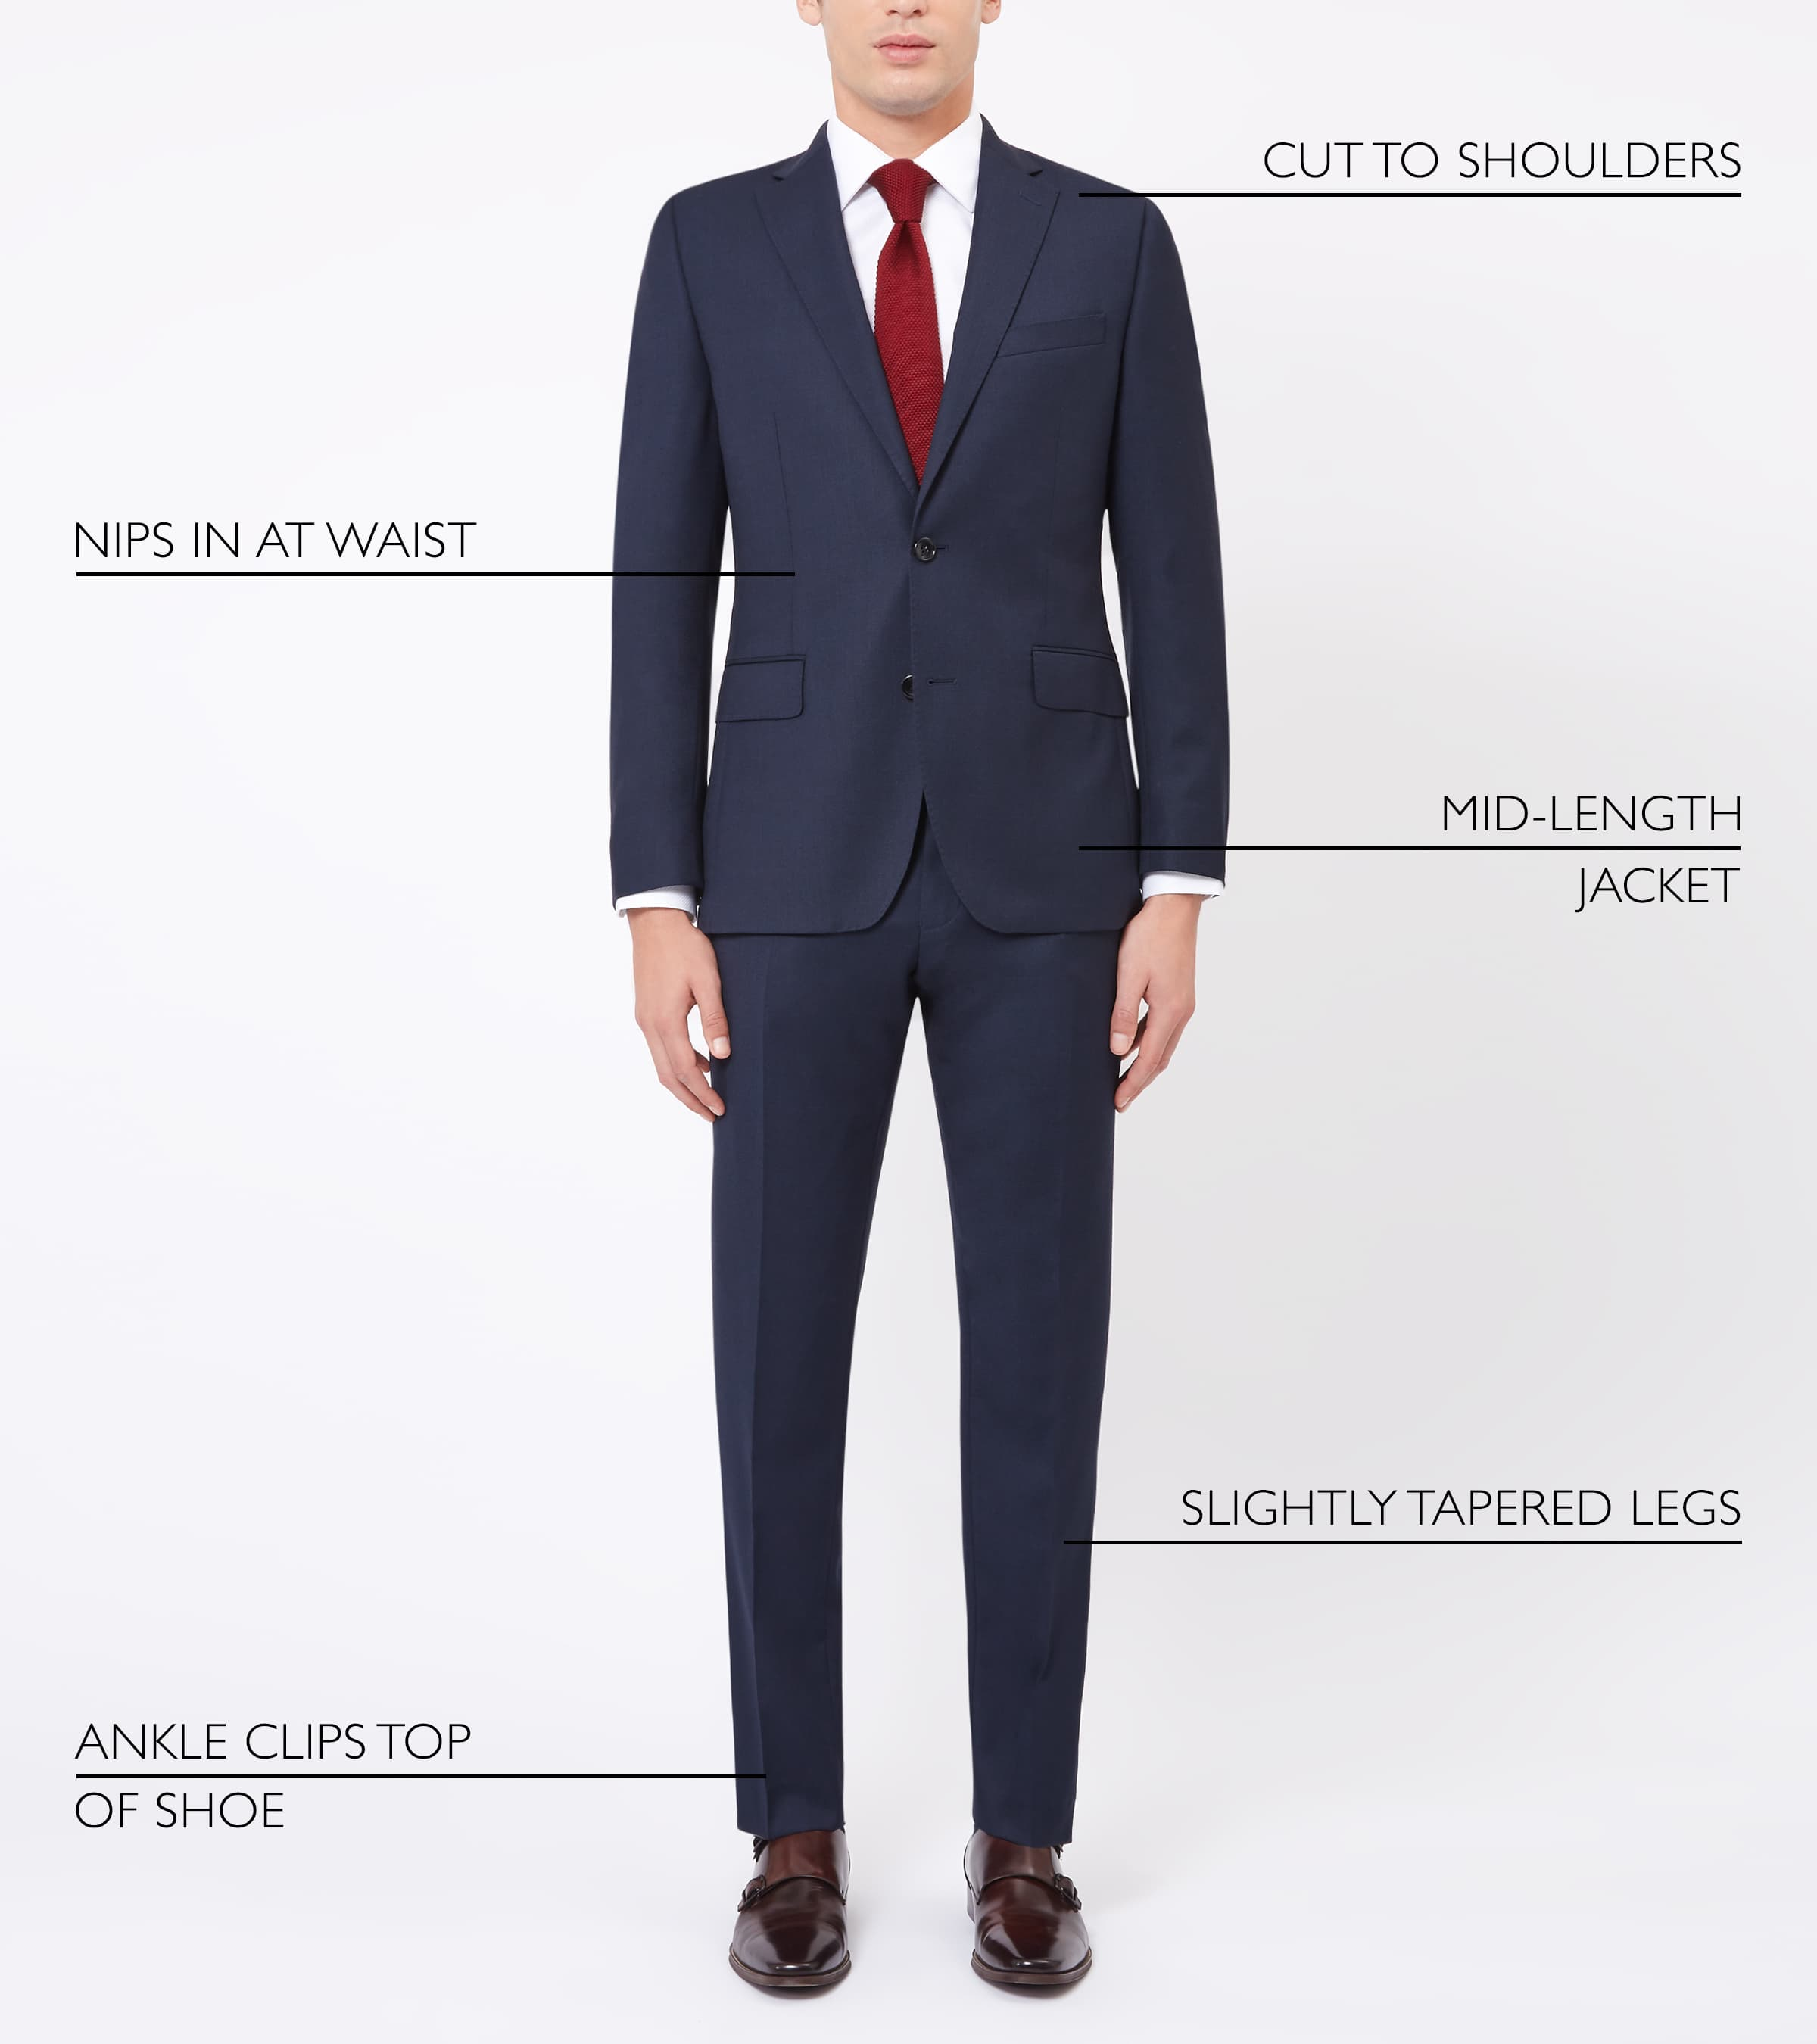 Men's Size Chart And Measurement